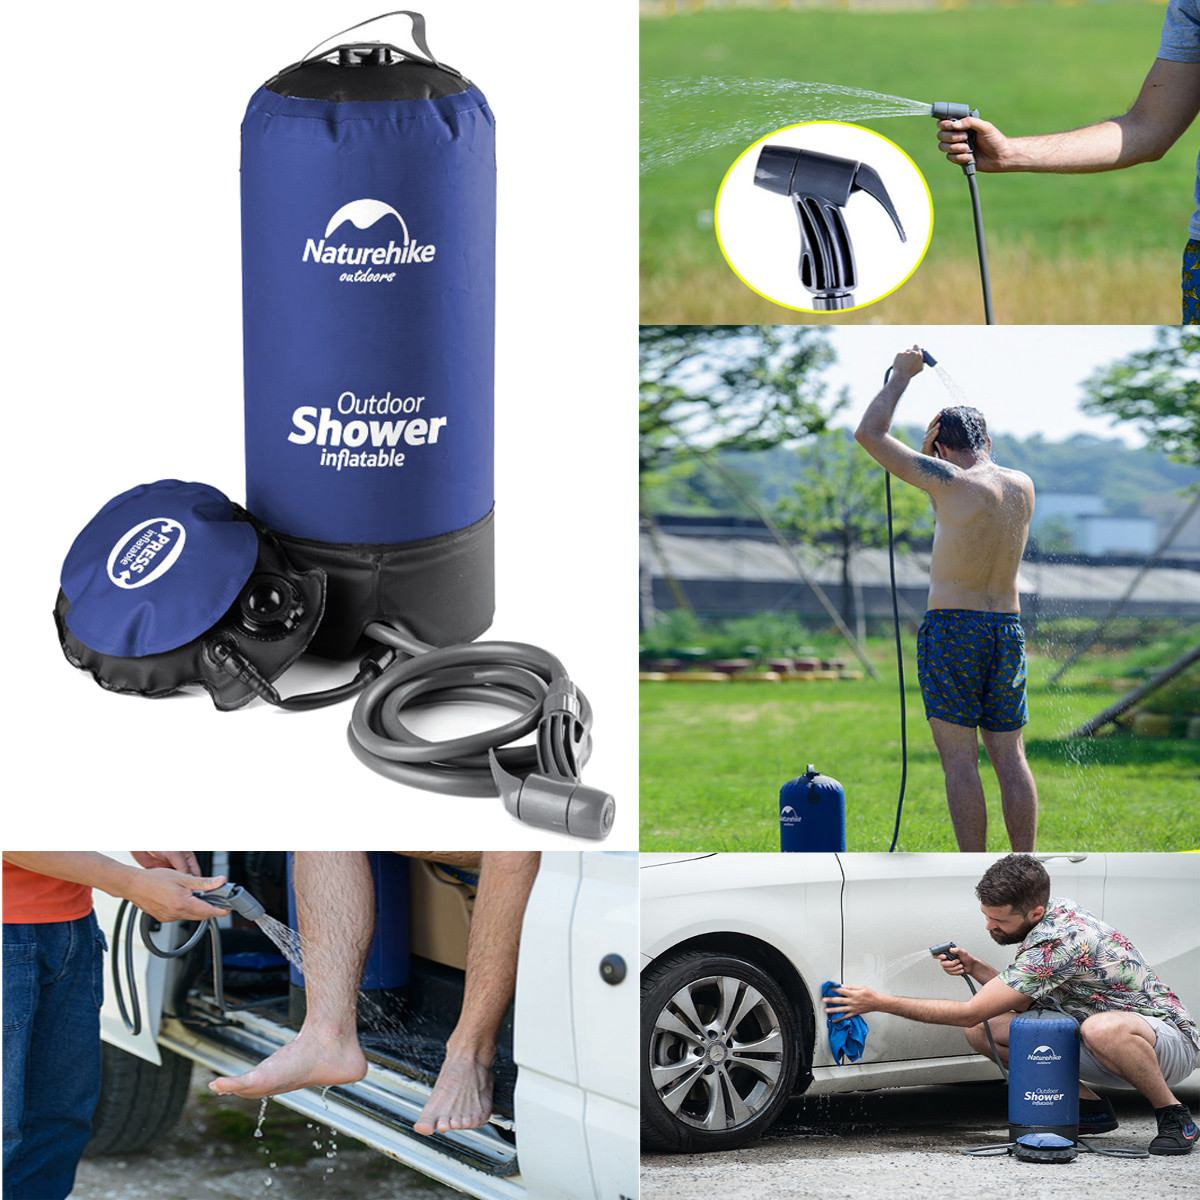 12L Inflatable Shower Pressure Shower Water Bag Portable Outdoor Hiking Shower Bag Folding Barrel Camping Water Storage Bags12L Inflatable Shower Pressure Shower Water Bag Portable Outdoor Hiking Shower Bag Folding Barrel Camping Water Storage Bags